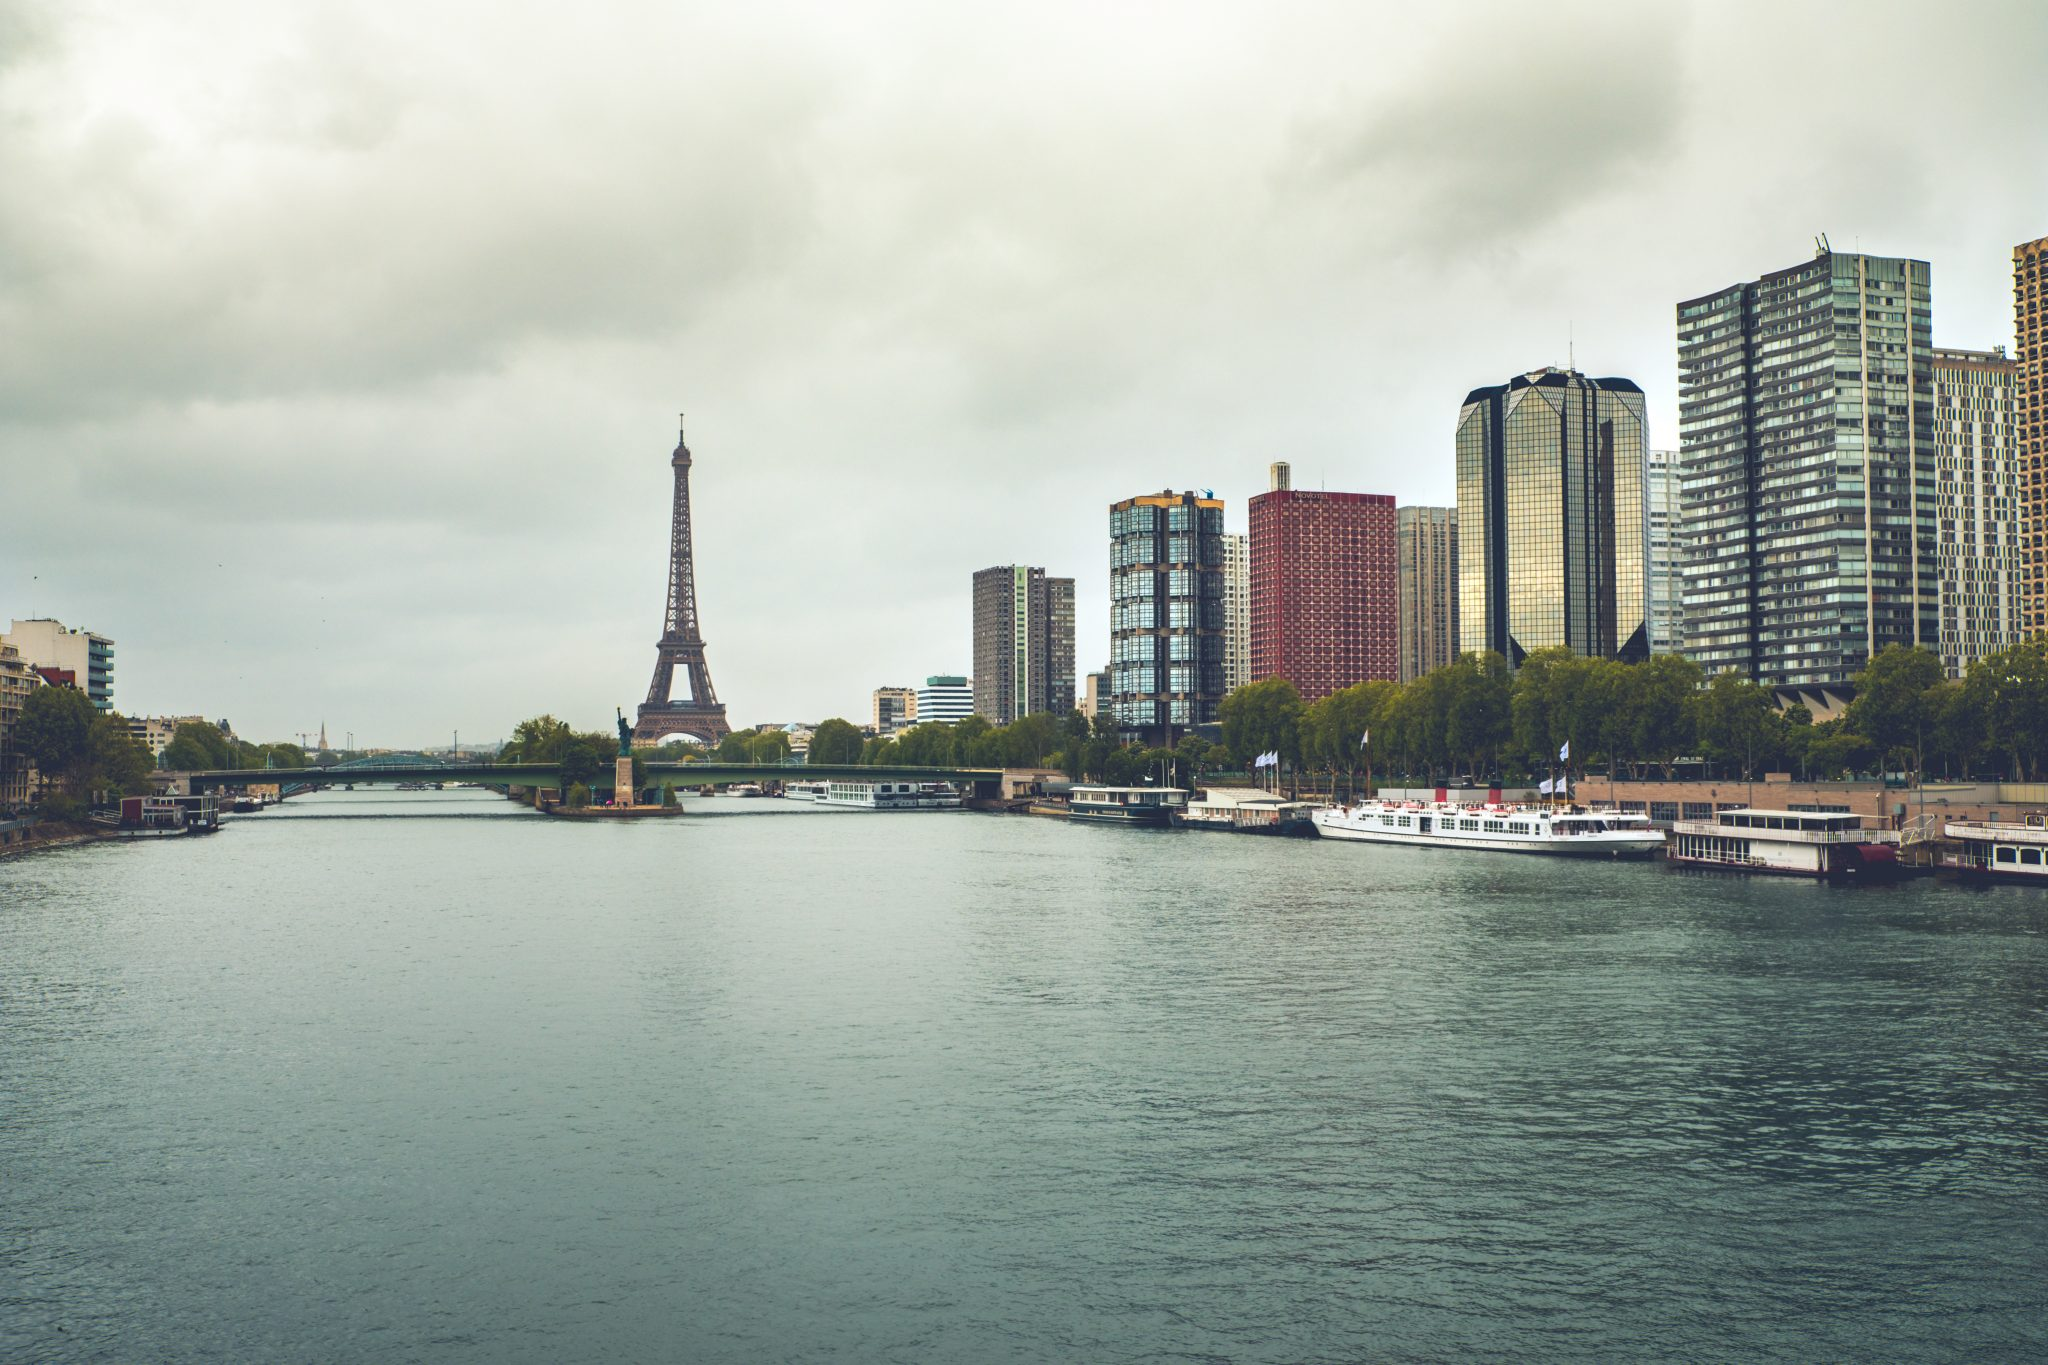 View of the seine, the statue of liberty and the eiffel tower photo by Jo Kassis